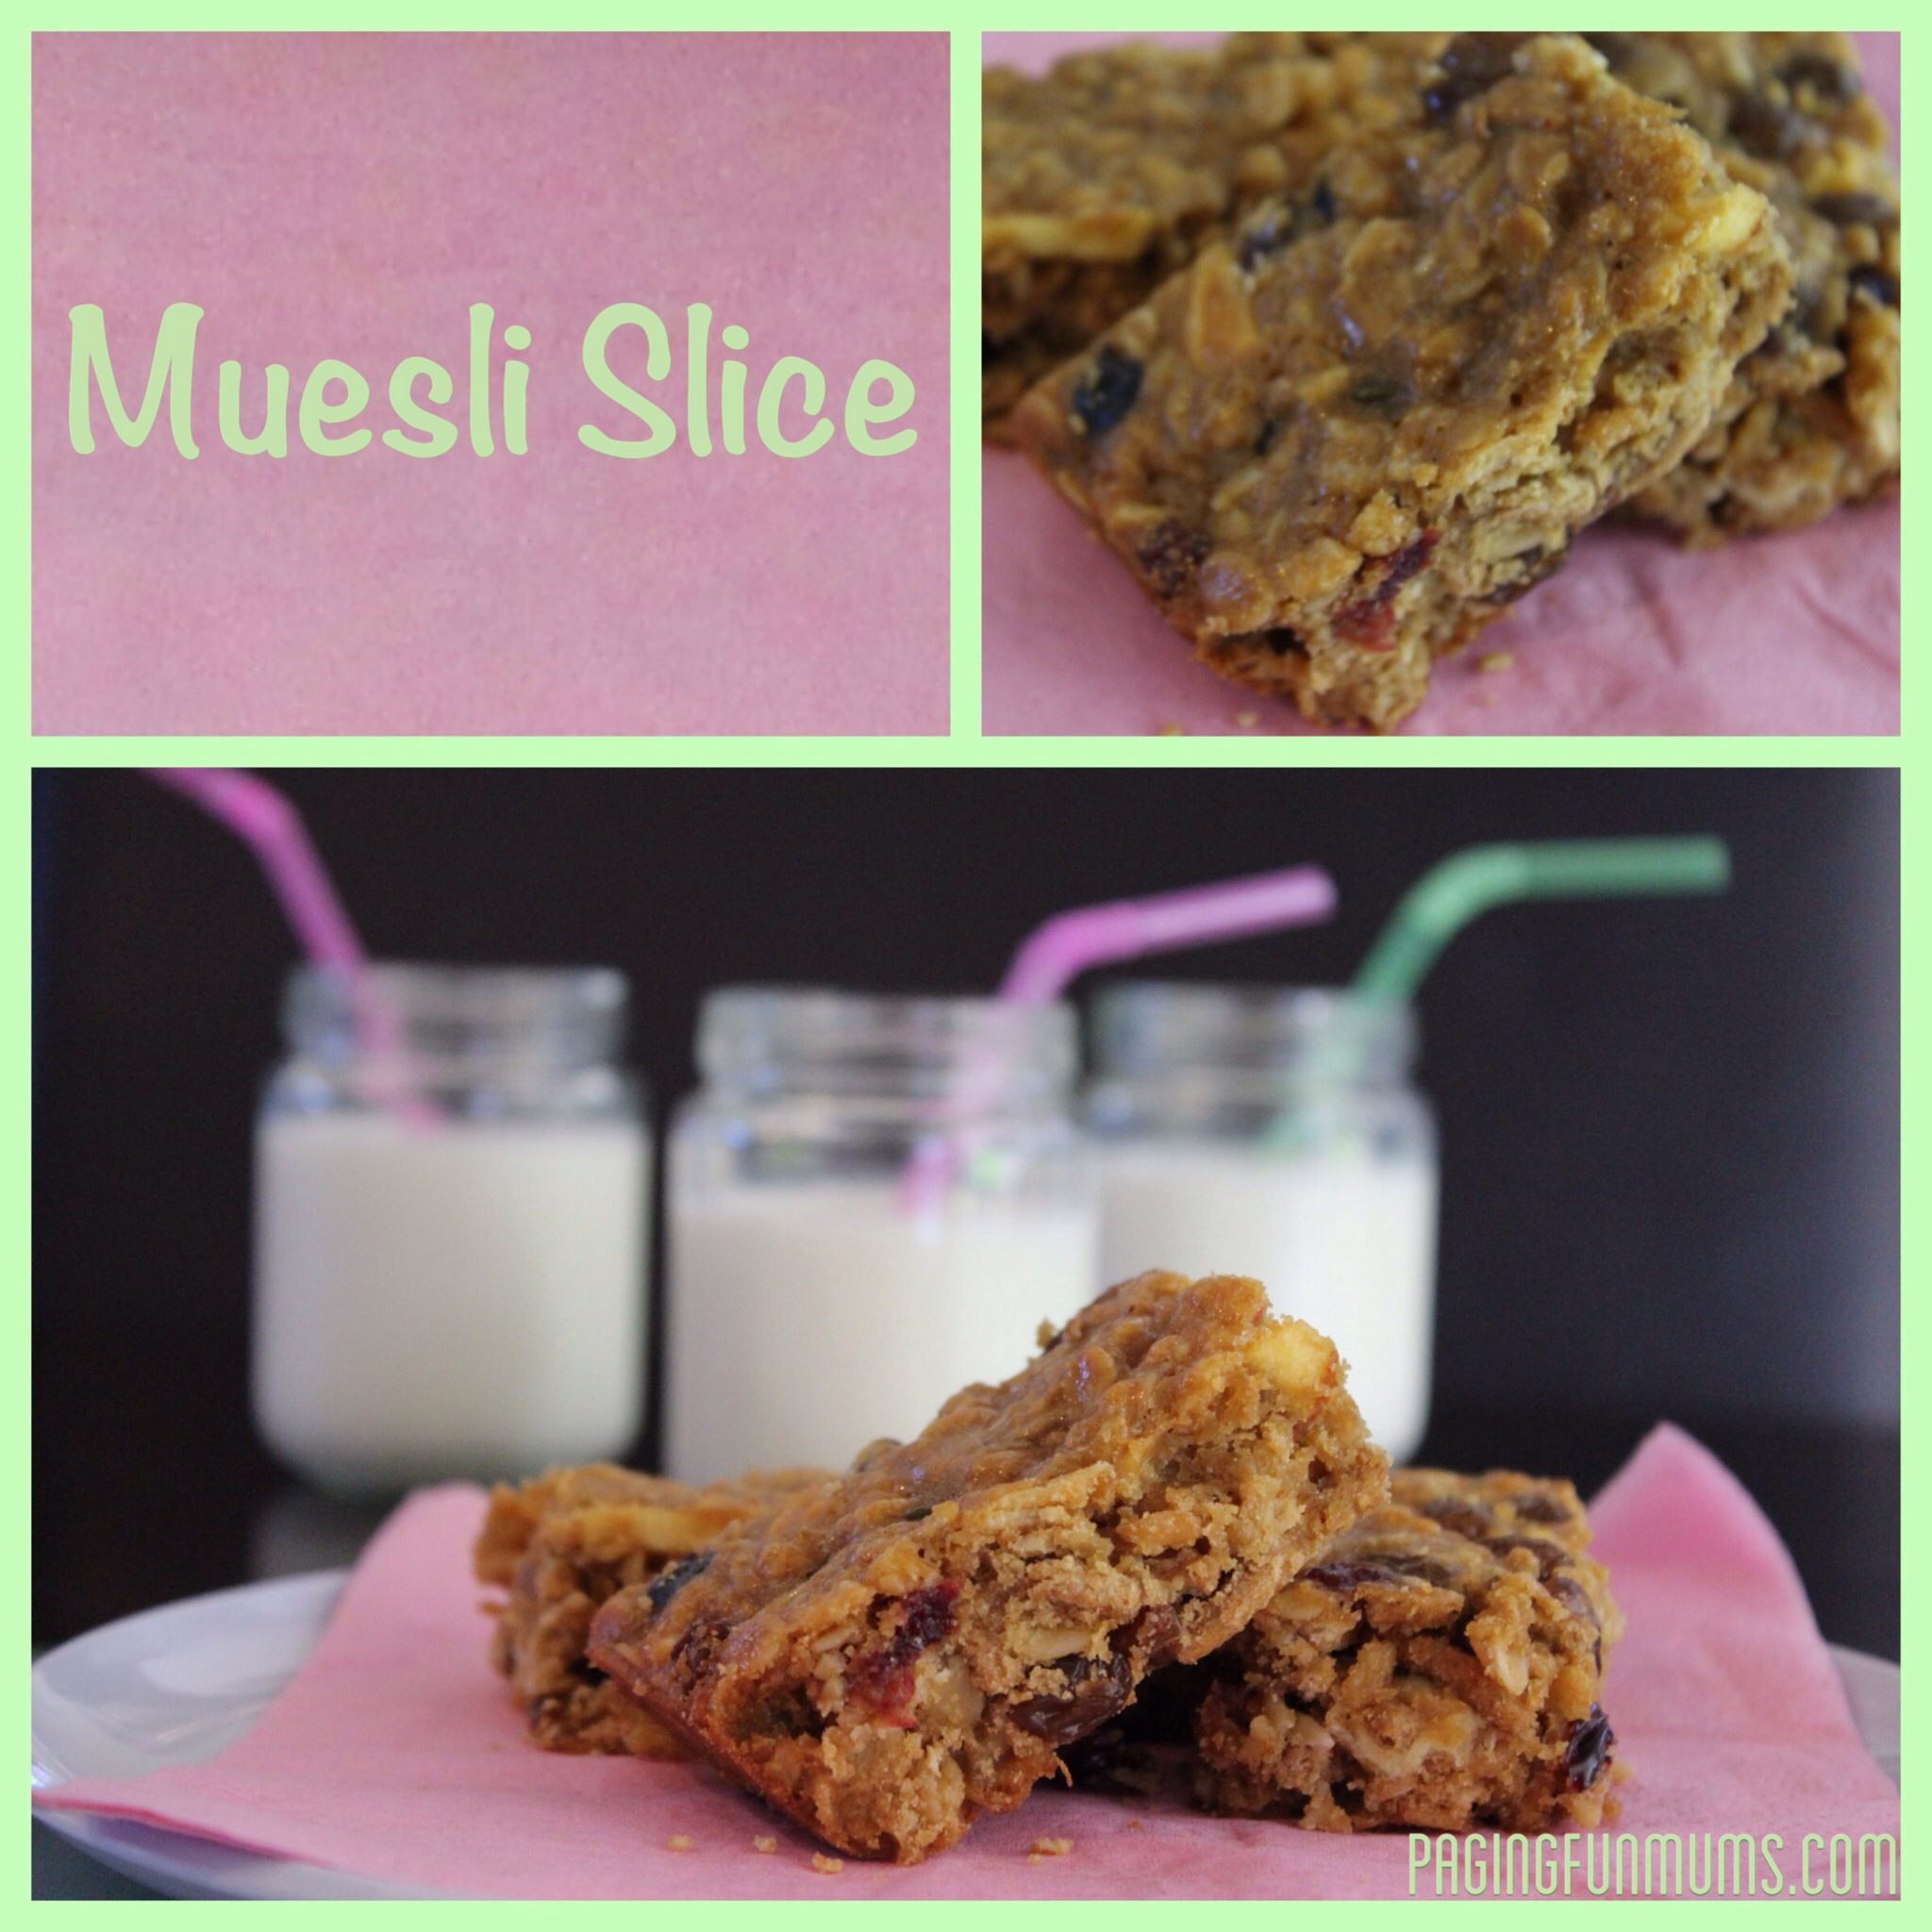 Muesli Slice – (Louise)